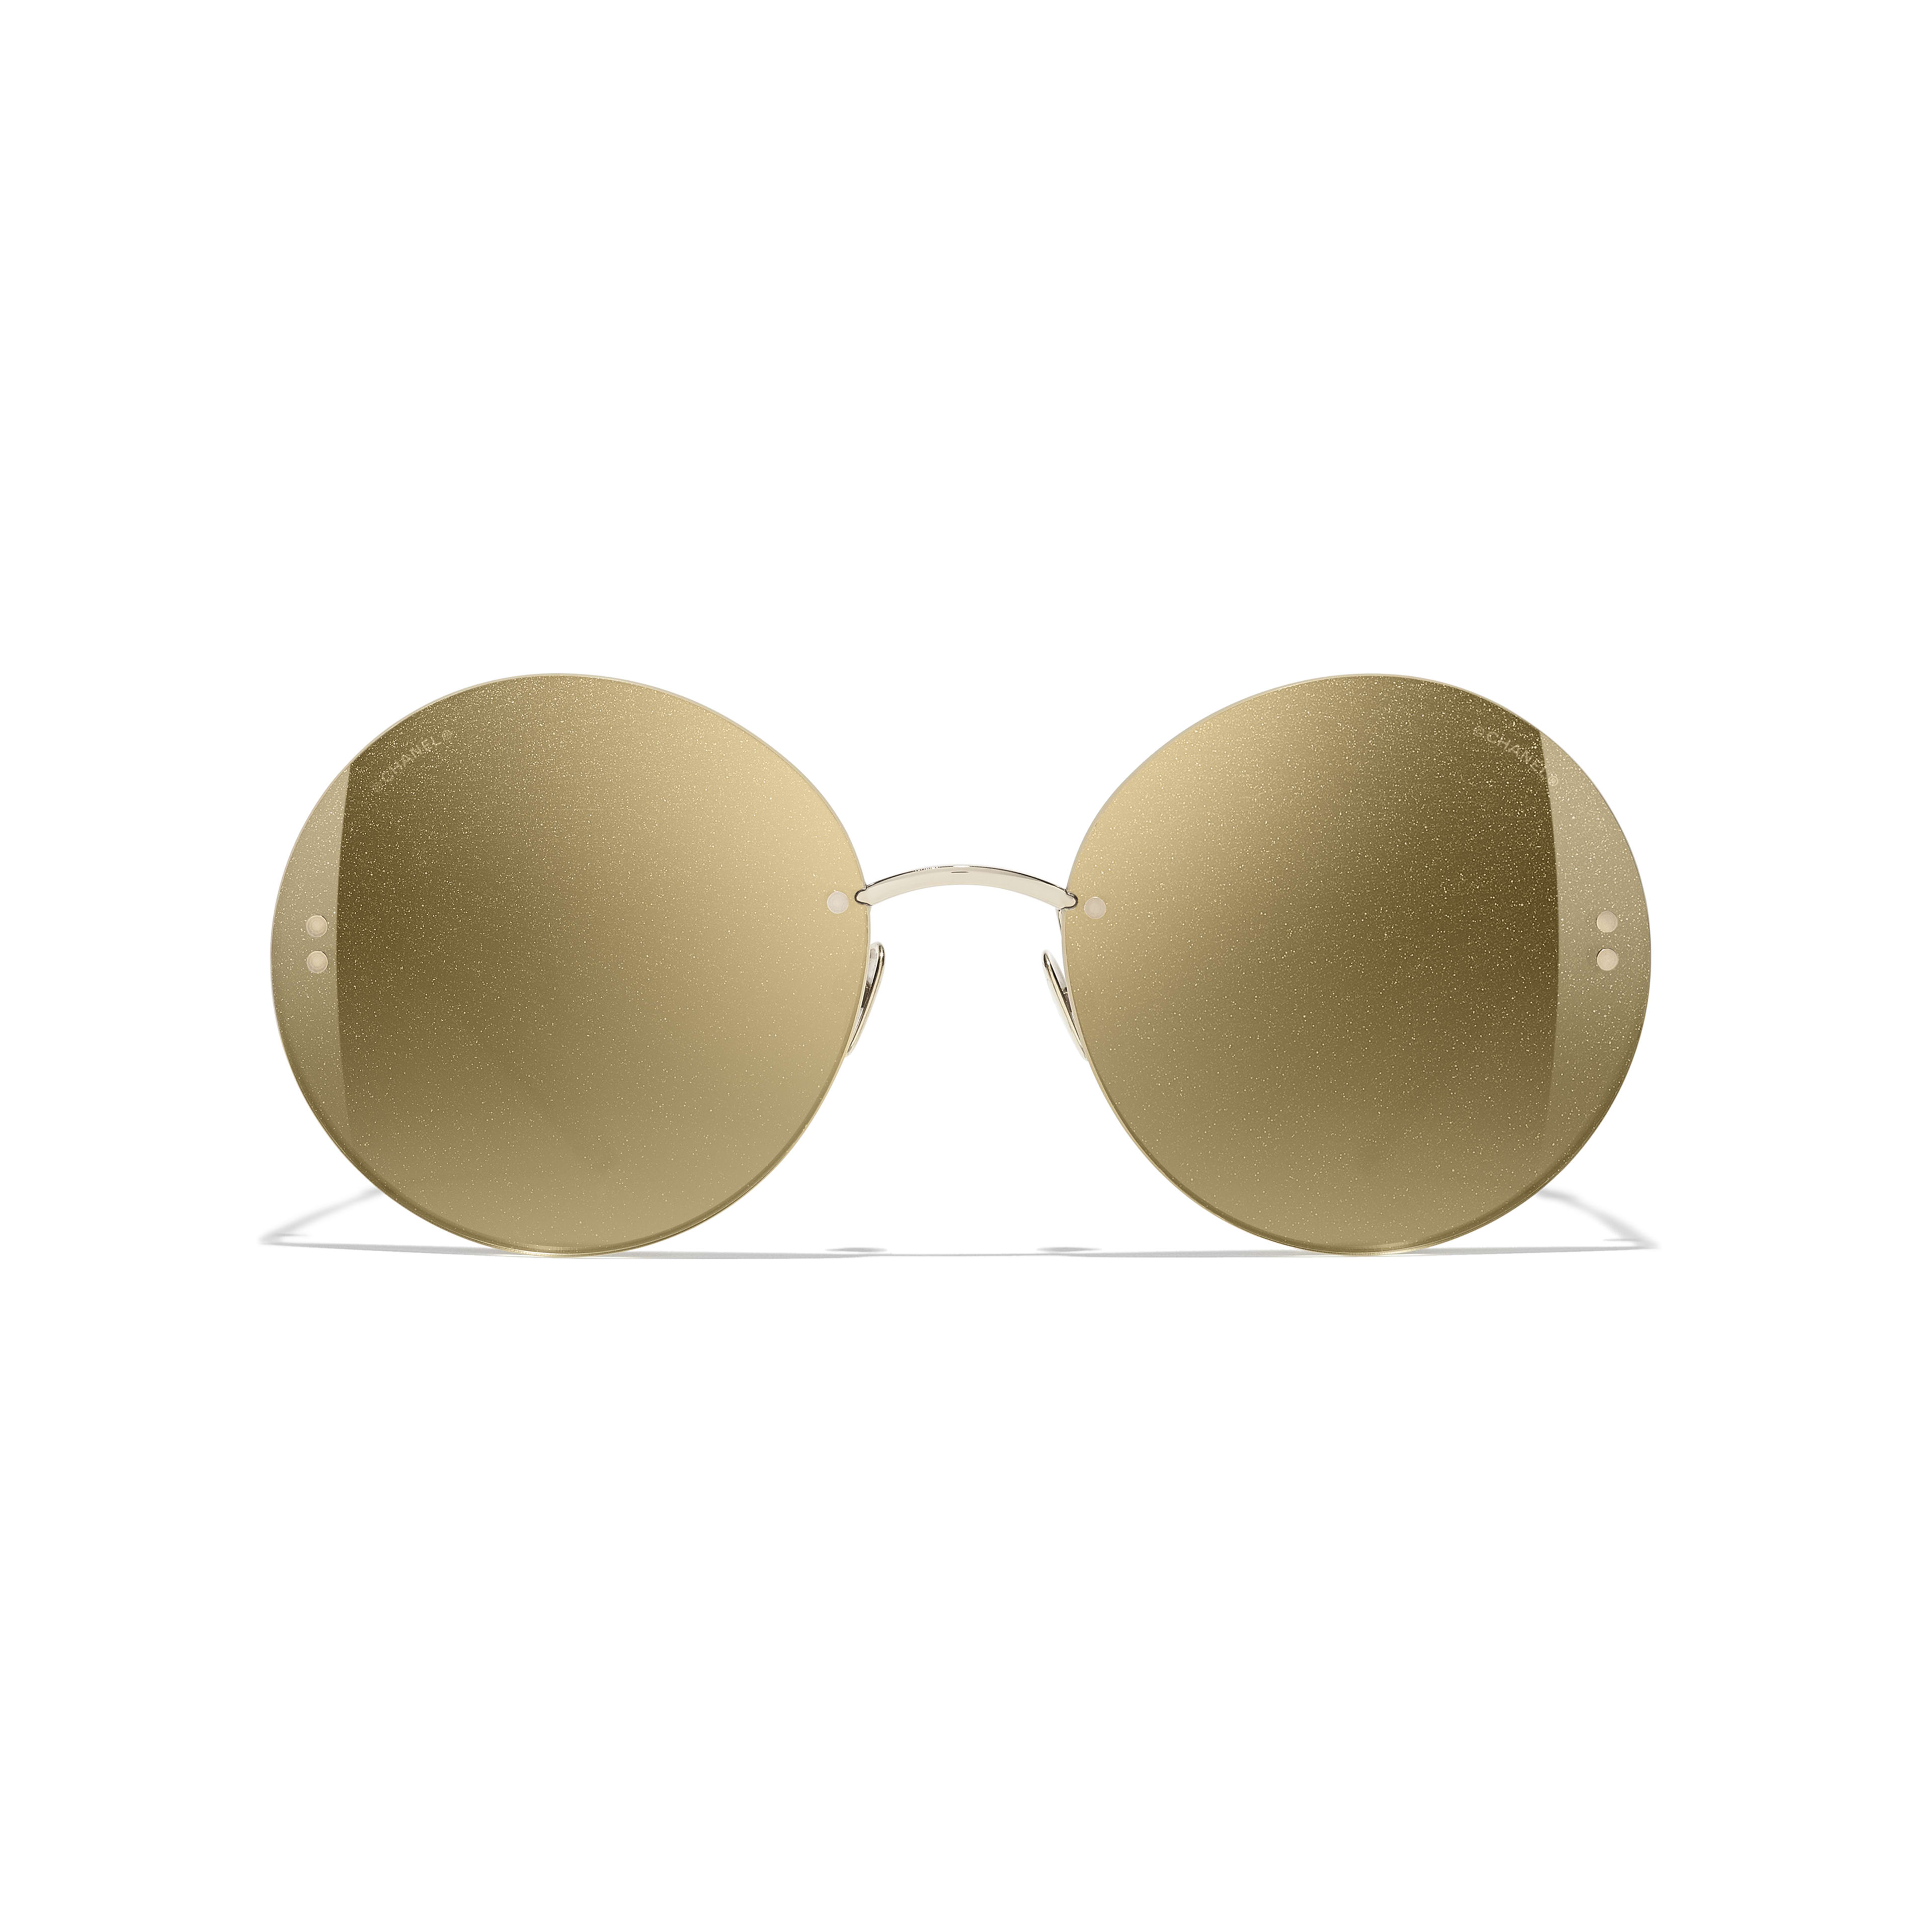 Round Sunglasses - Gold - Metal - Alternative view - see full sized version